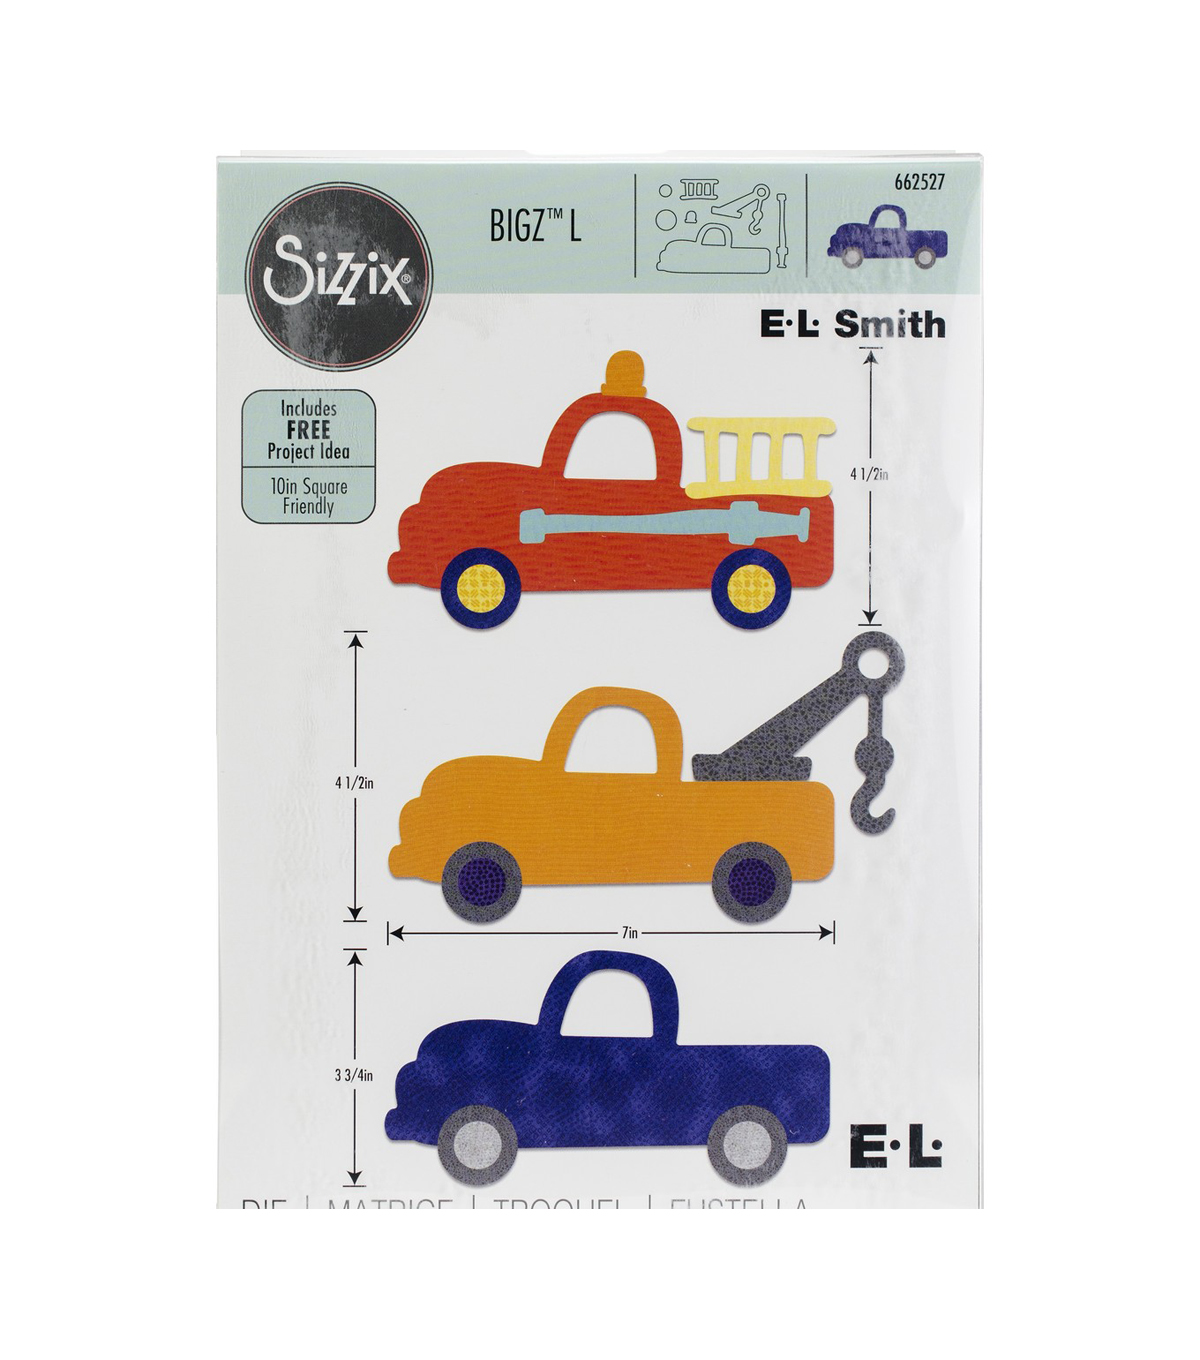 Sizzix Bigz L Die-Fire & Tow Truck By E.L. Smith